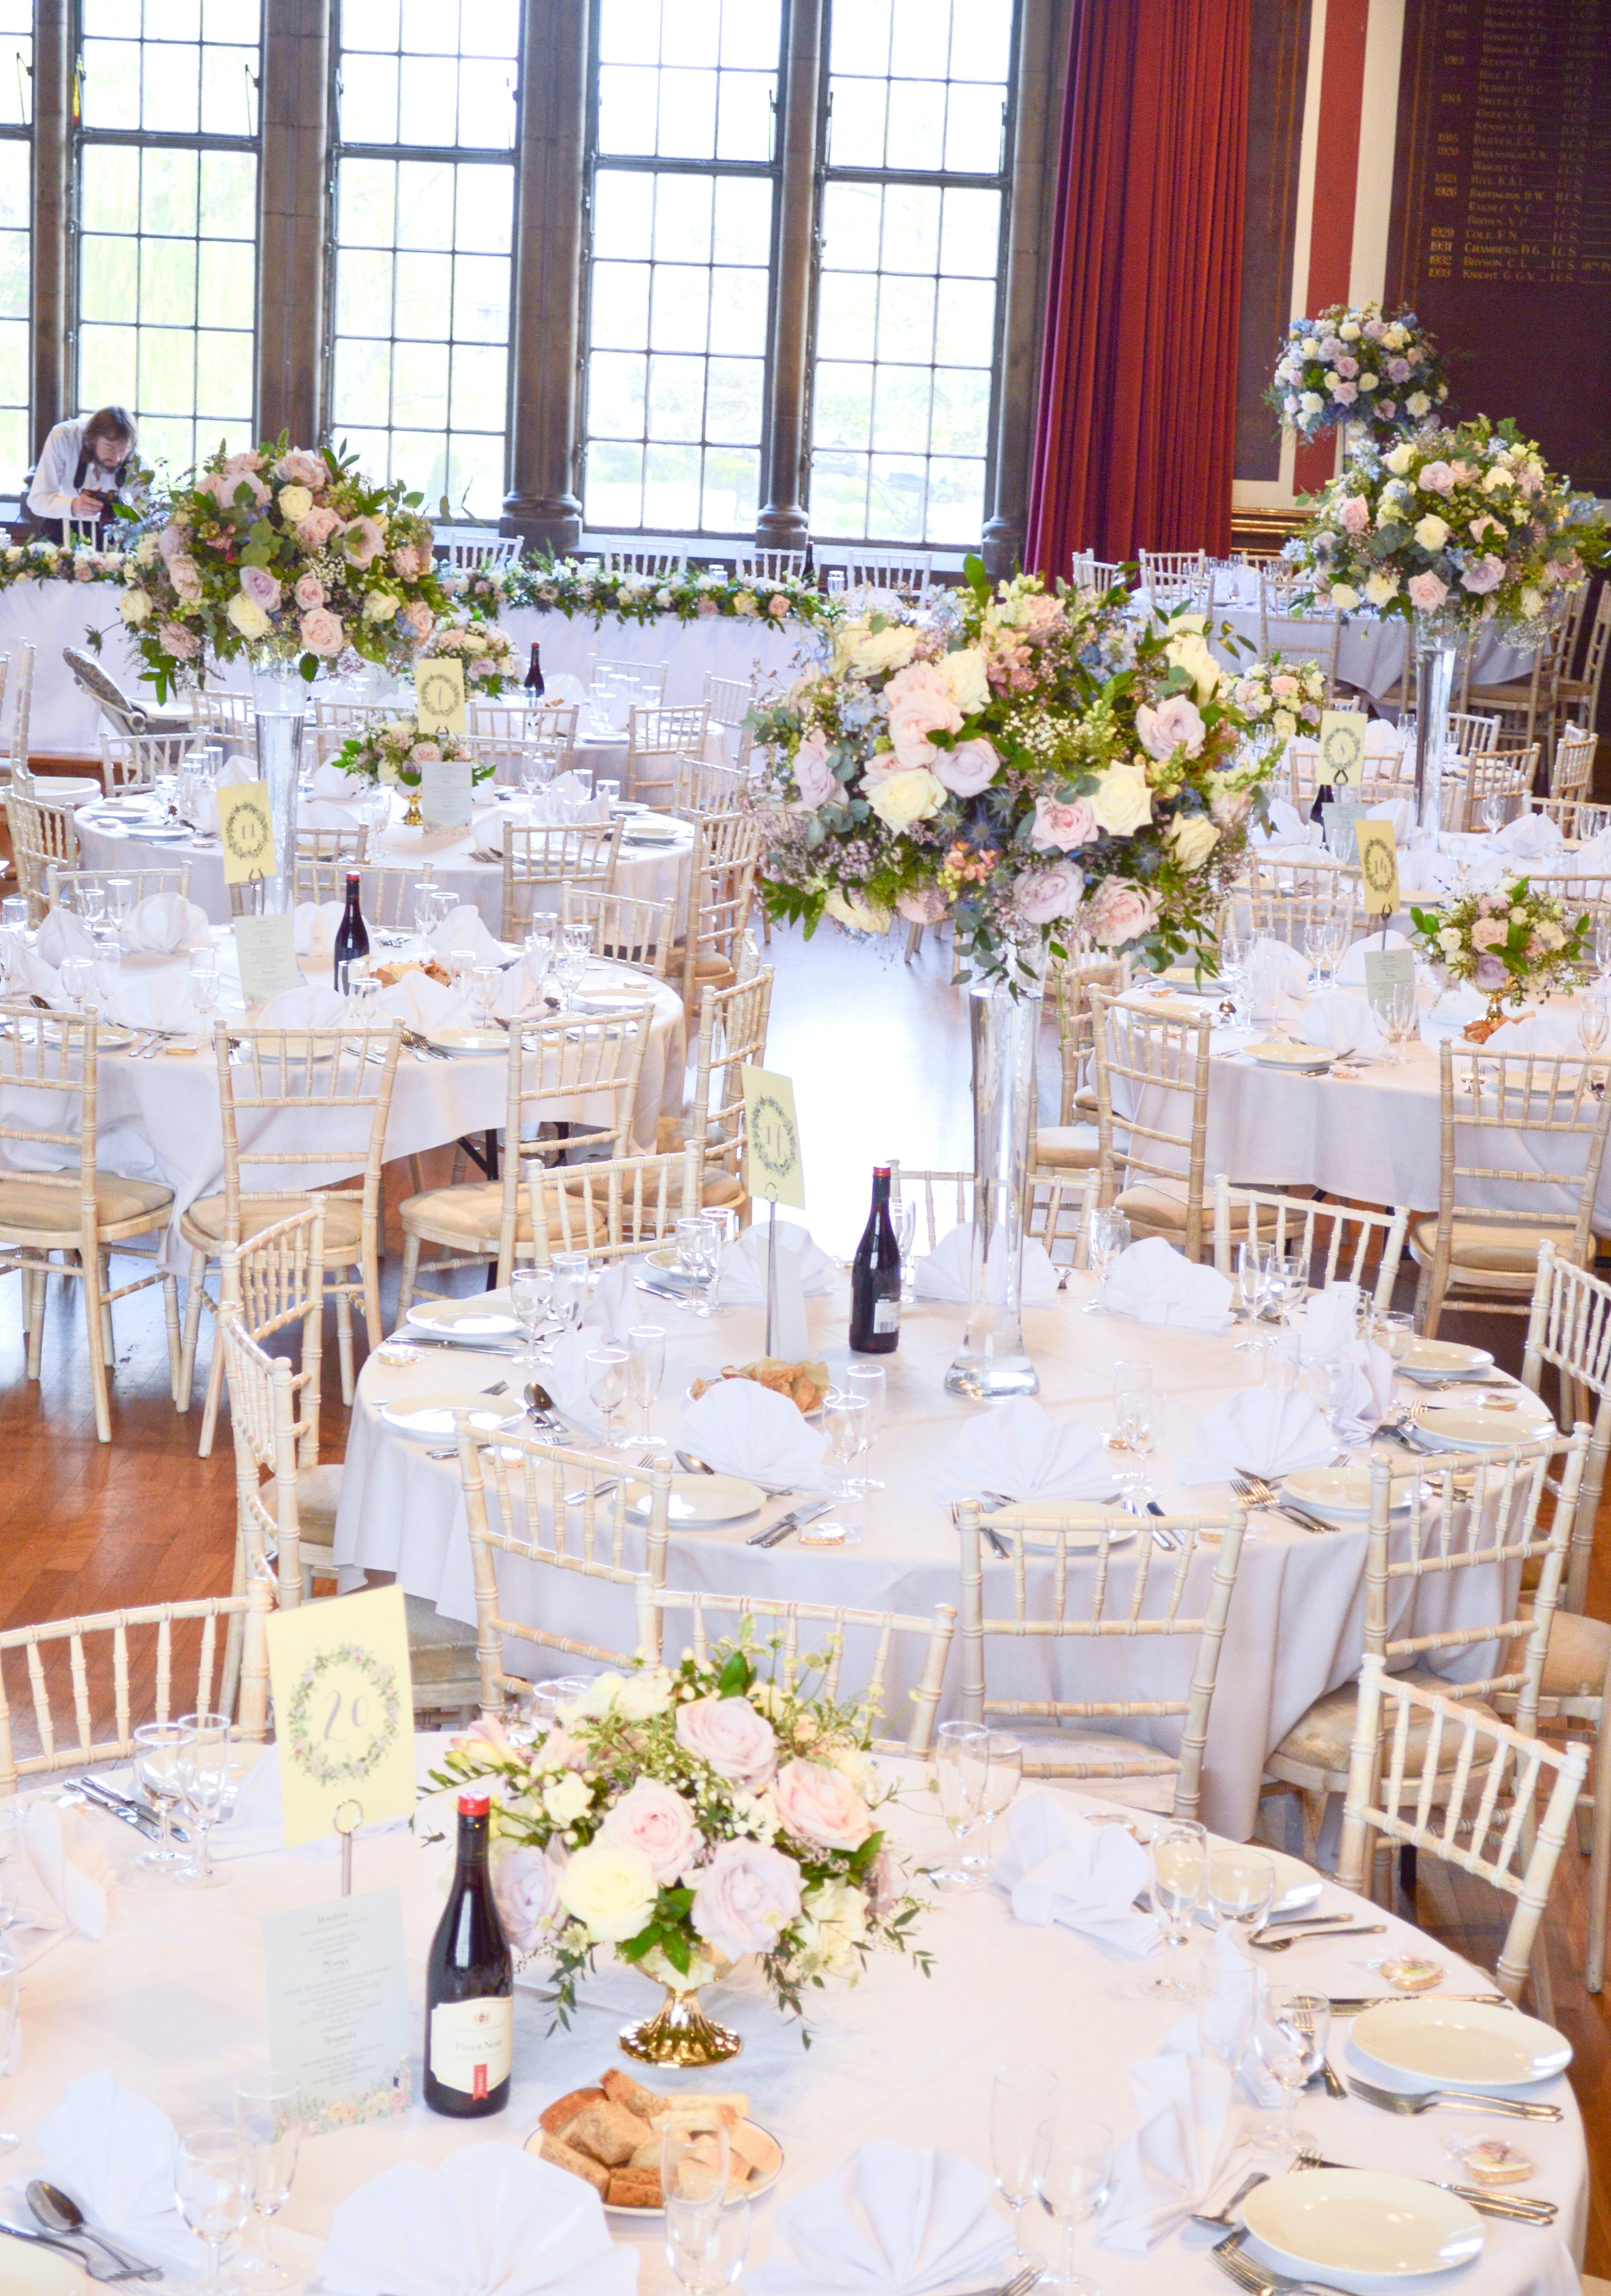 Natural garden rustic style spring pastel pink blue lilac high and low table centrepieces floral arrangement wedding reception Dulwich College Cherie Kelly wedding flowers London 2